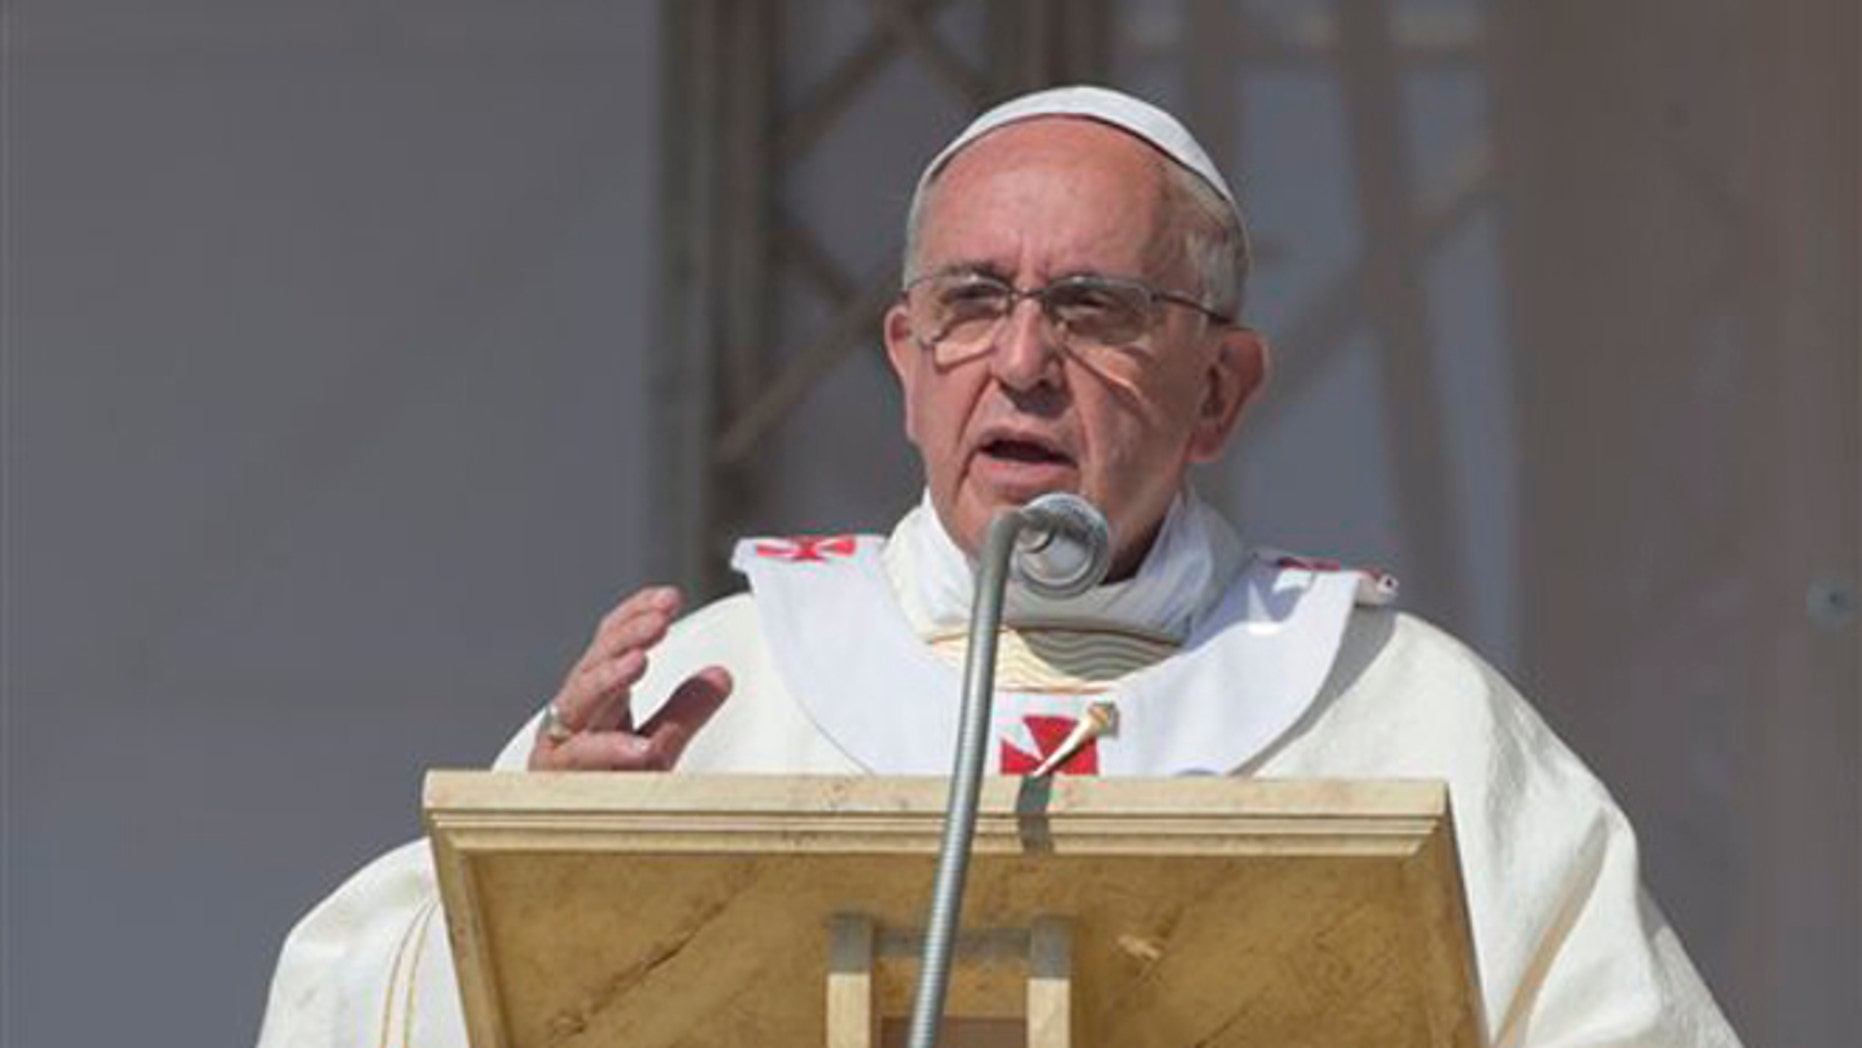 Pope Francis celebrates a Mass in Sibari, southern Italy, Saturday, June 21, 2014. Pope Francis paid a one day visit to Castrovillari, Sibari, and Cassano allo Jonio, in the Calabria region of Italy. Pope Francis comforted the imprisoned father of a slain toddler during a visit Saturday to a southern Italian region infested by one of the world's most powerful crime syndicates. During his one-day pilgrimage to Calabria, Francis met separately with the father and two grandmothers of Coco' Campolongo in the courtyard of a prison in the town of Castrovillari. (AP Photo/Alessandra Tarantino)